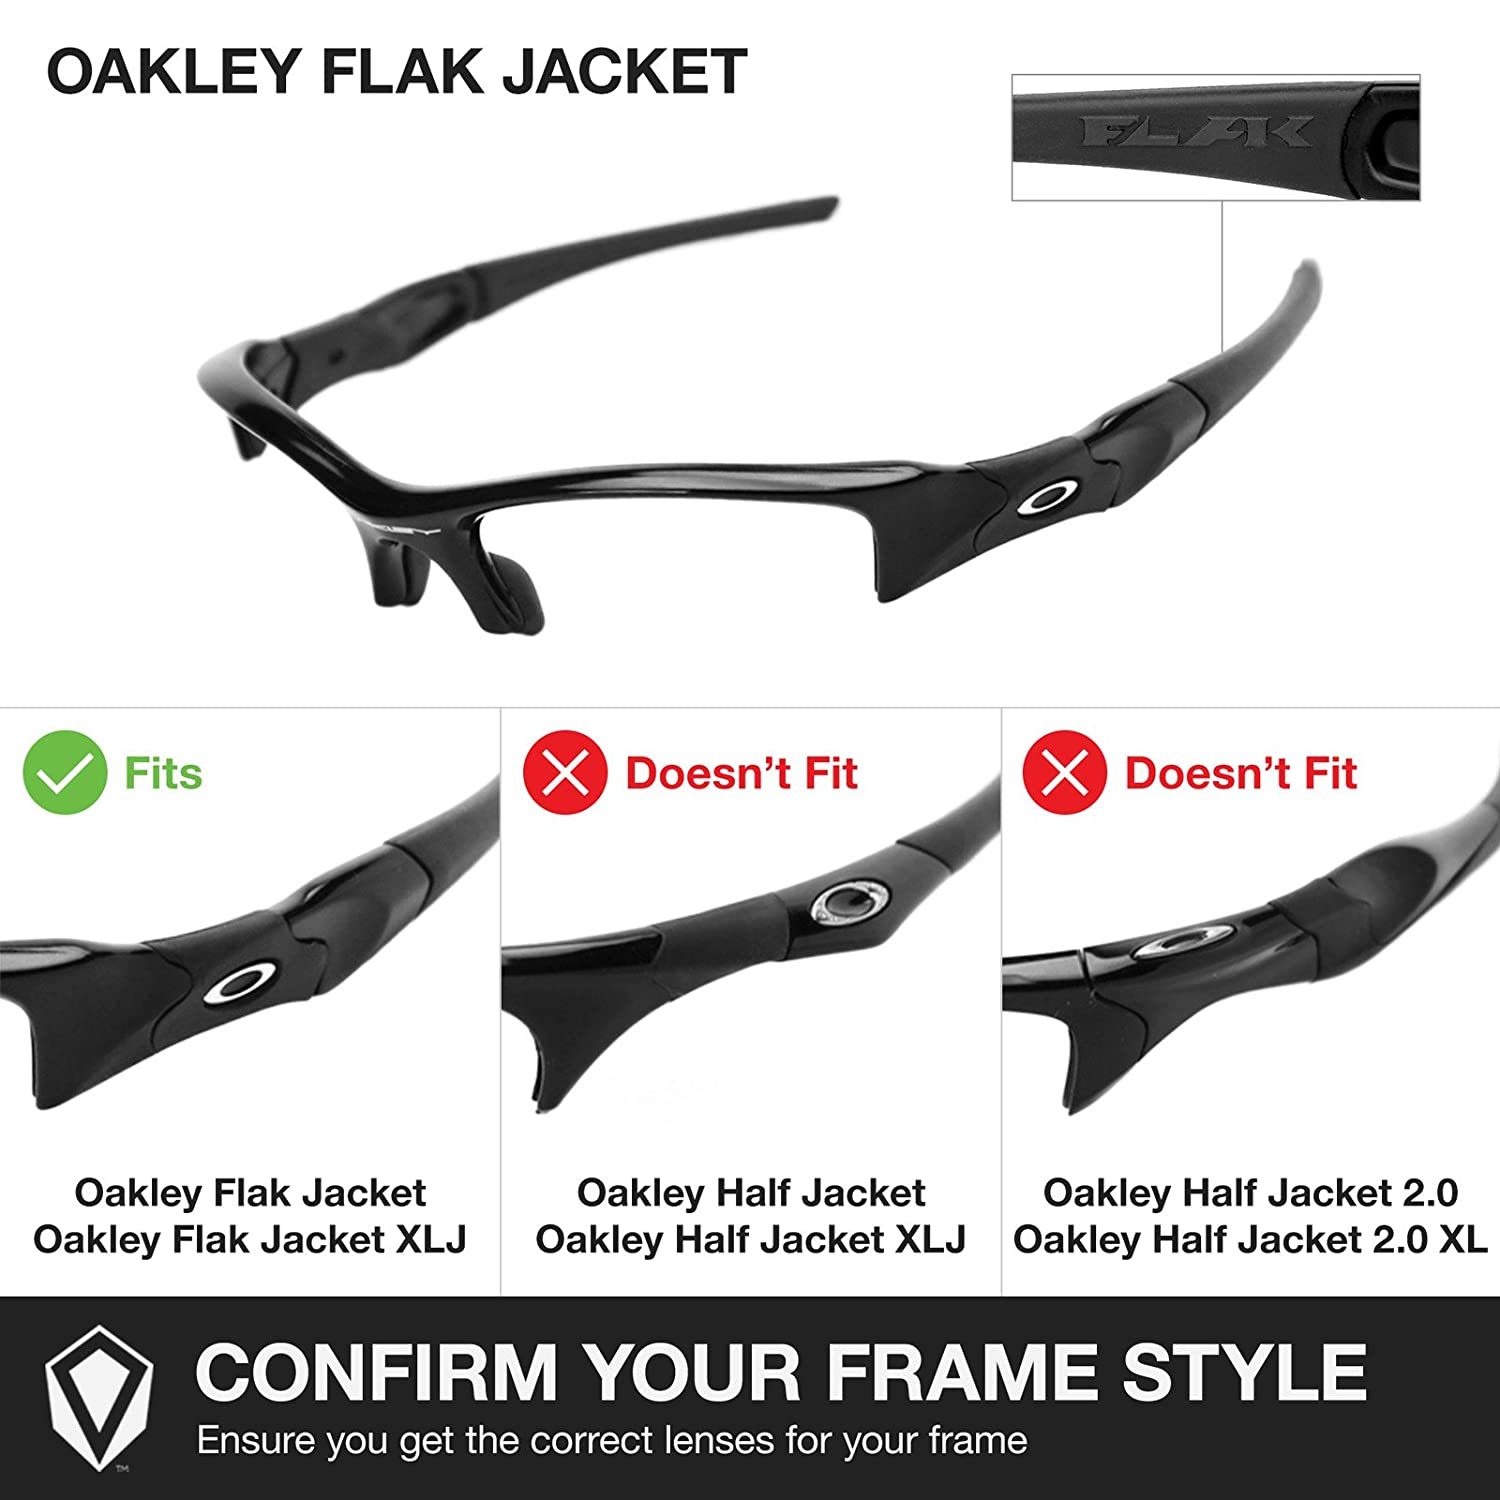 oakley flak jacket 2.0 replacement lenses kyrv  Amazoncom: Revant MaxGrip Temple Sleeve/Nose Pad Kit for Oakley Flak Jacket